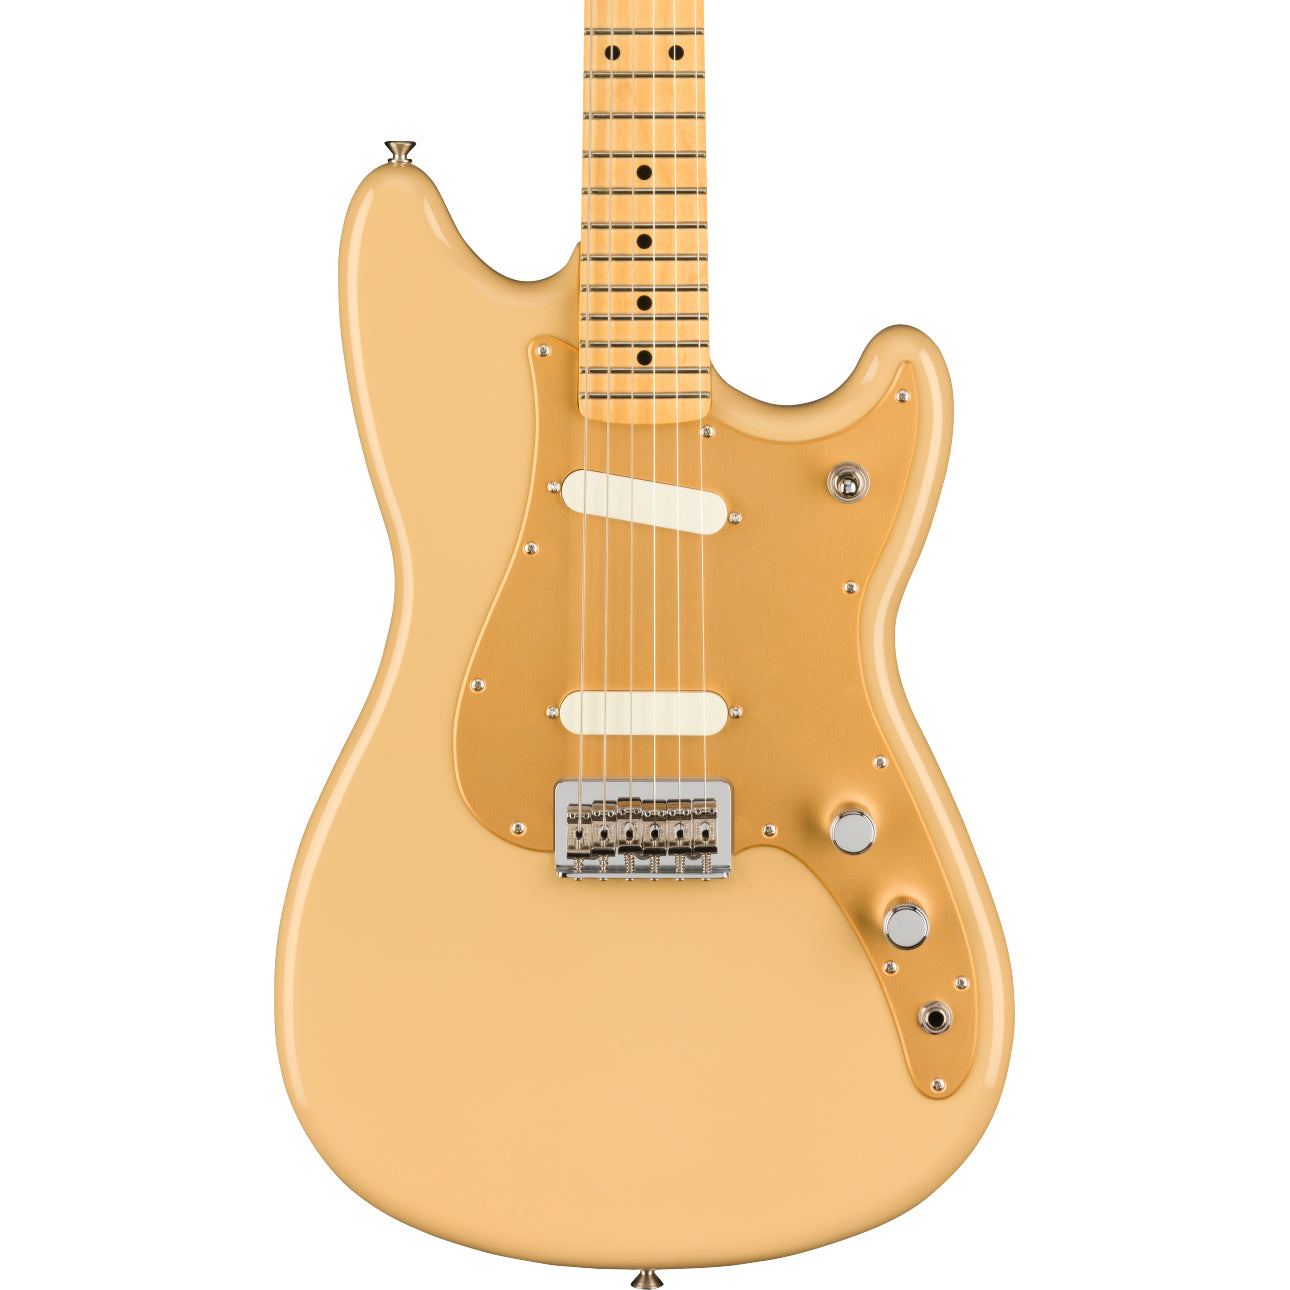 Fender Duo Sonic - Desert Sand - Maple Neck